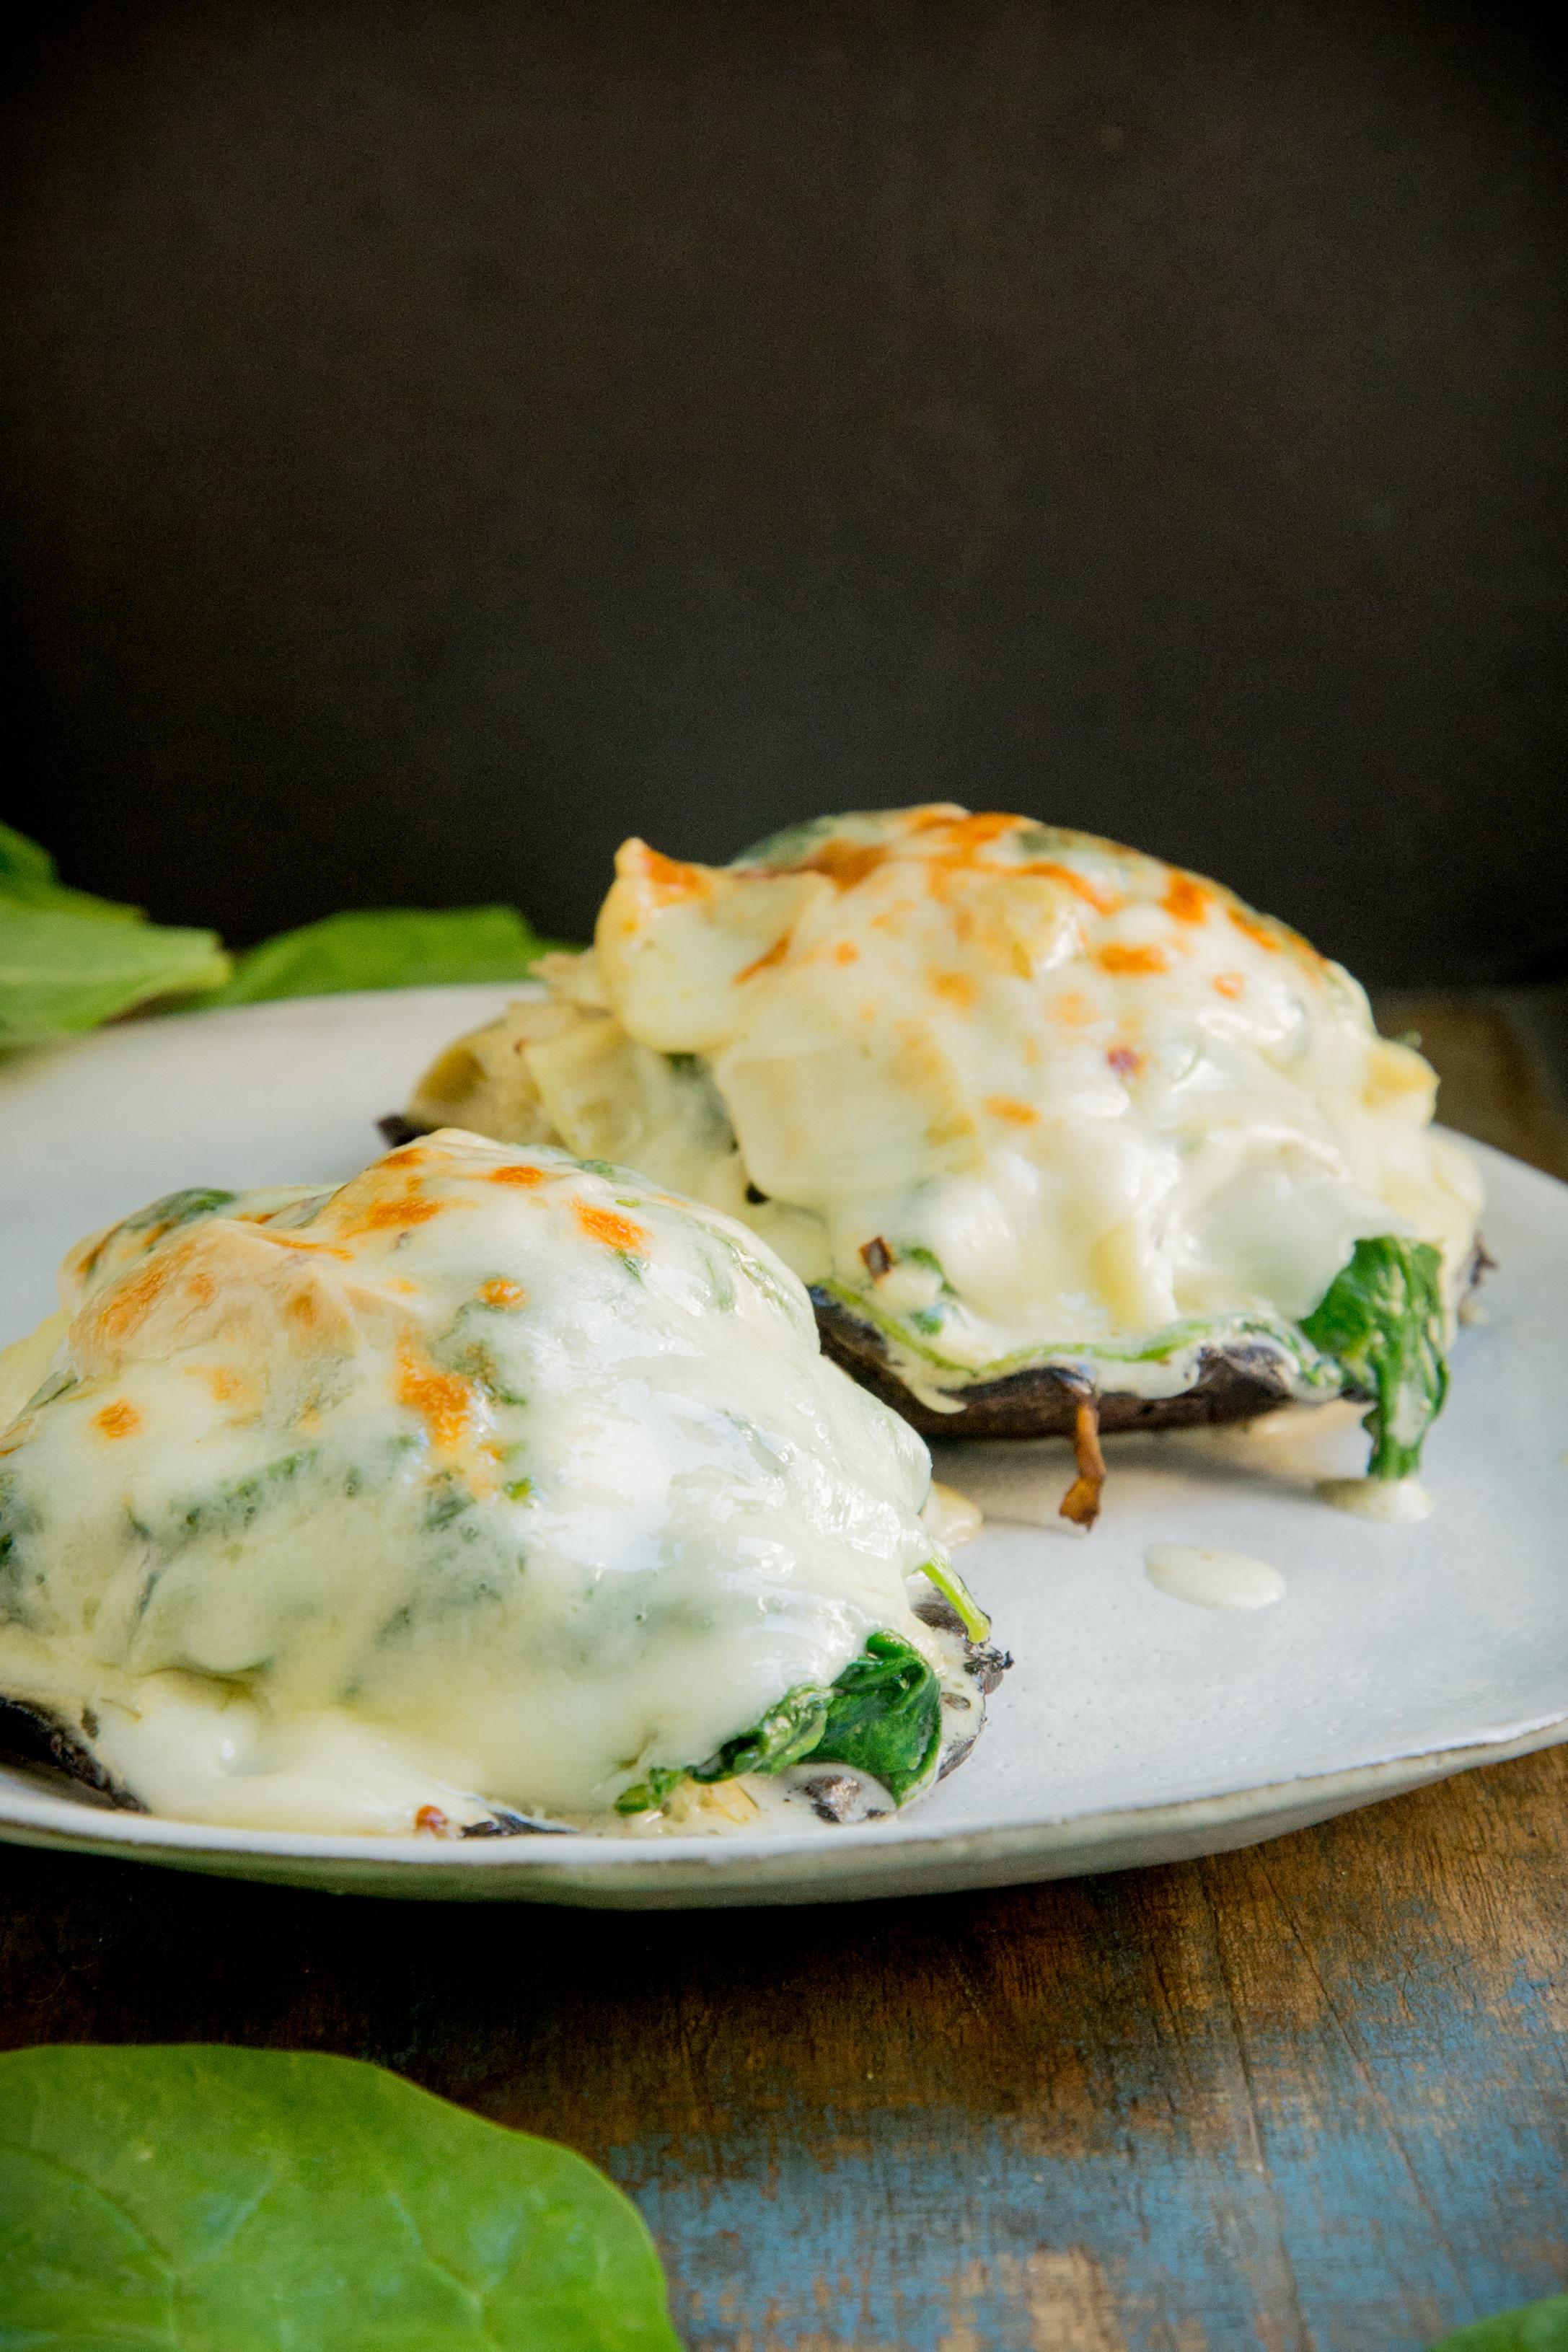 Spinach and Artichoke Stuffed Mushrooms-ready for eating.